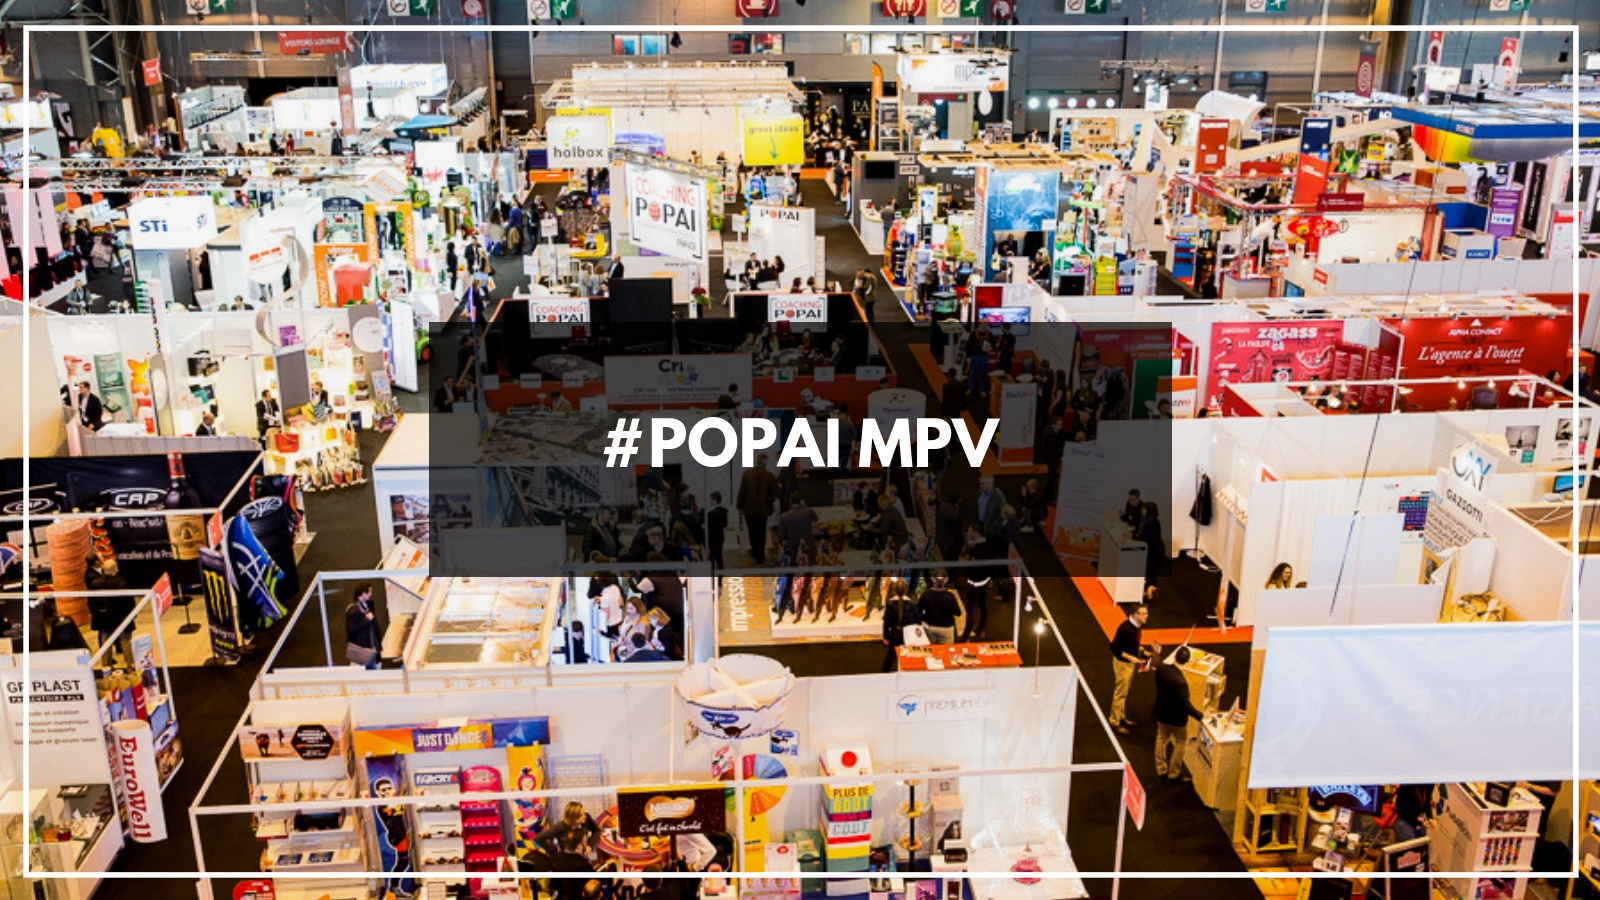 Salon Pharmacie Salon Popai Mpv 2018 Salon Du Marketing Point De Vente